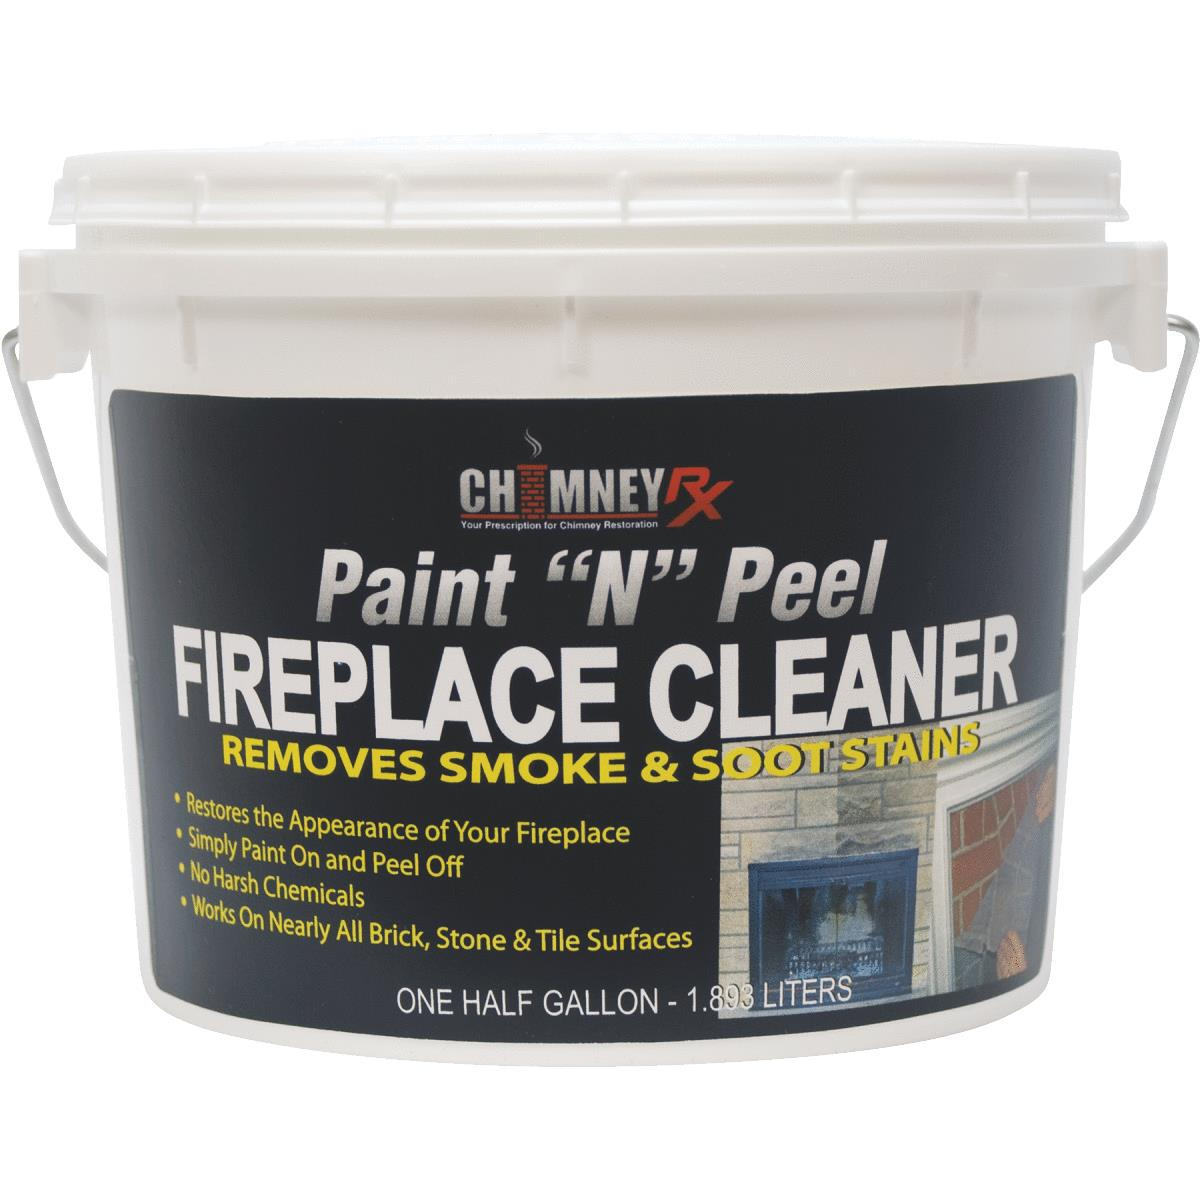 Chimney RX Paint N Peel Fireplace Masonry Cleaner